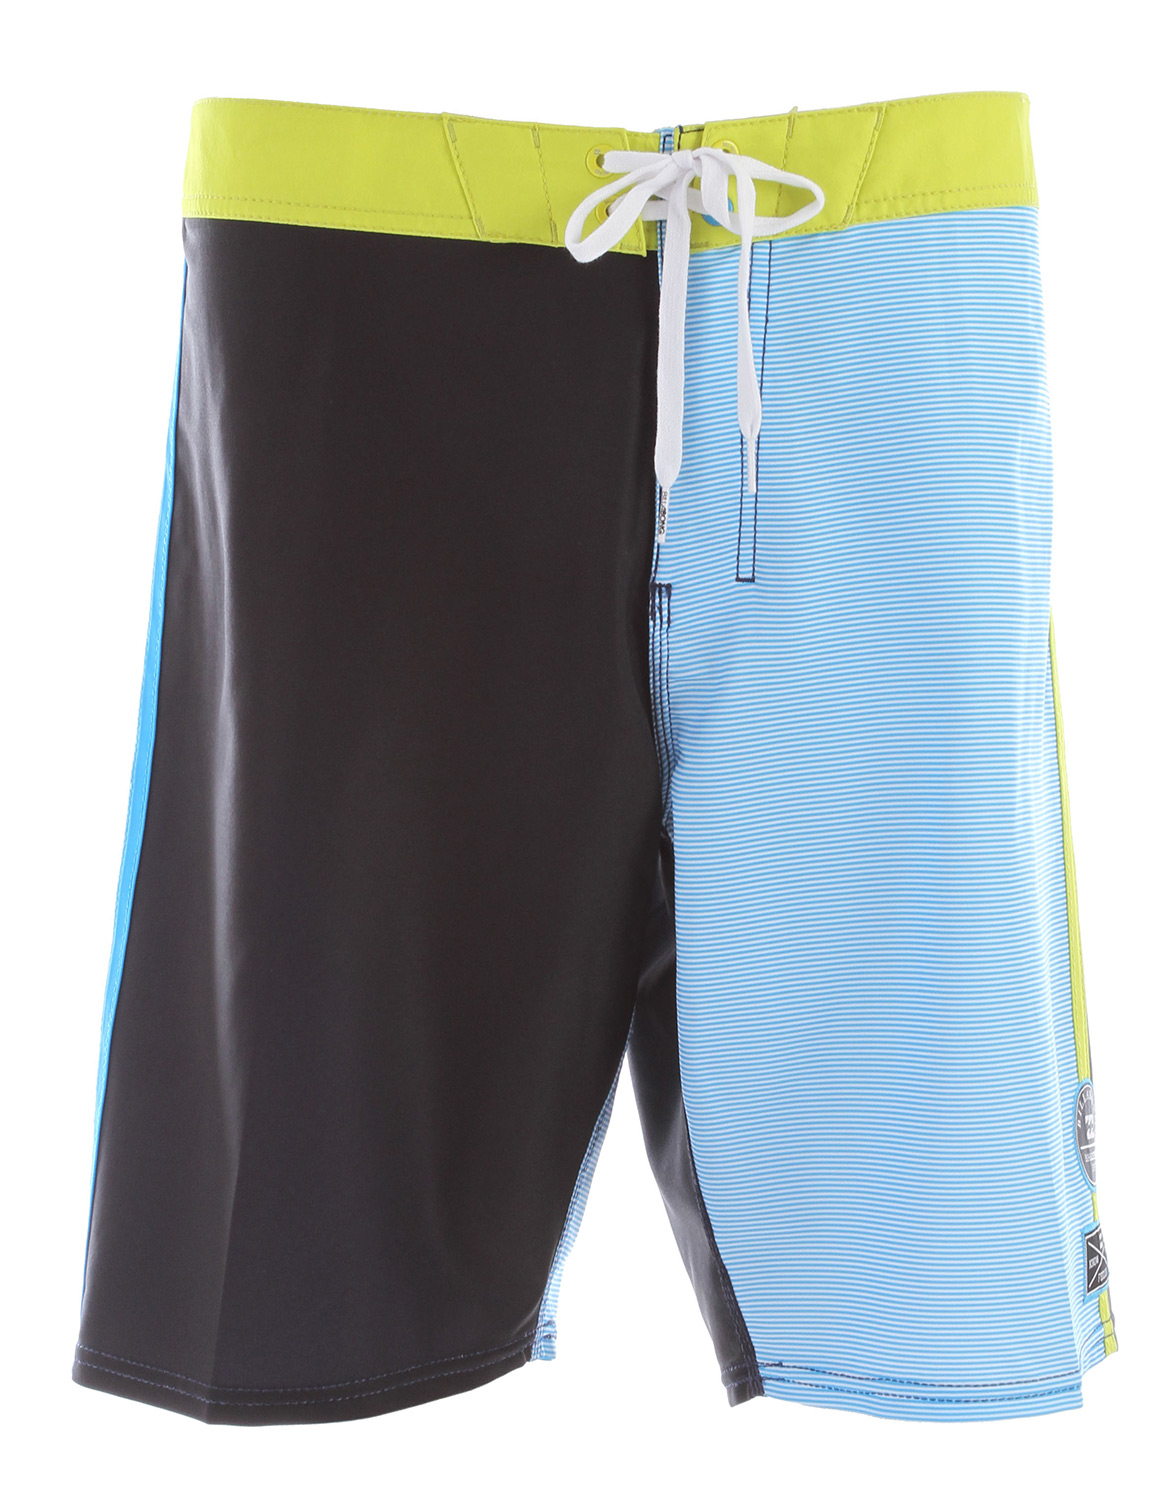 "Surf Key Features of the Billabong Legend Boardshorts: 19"" Hydros2stretch Platinum X Quad stretch boardshort with H2 Repel 2-tone break up stripe with contrast side binding 92% polyester/8% spandex - $41.95"